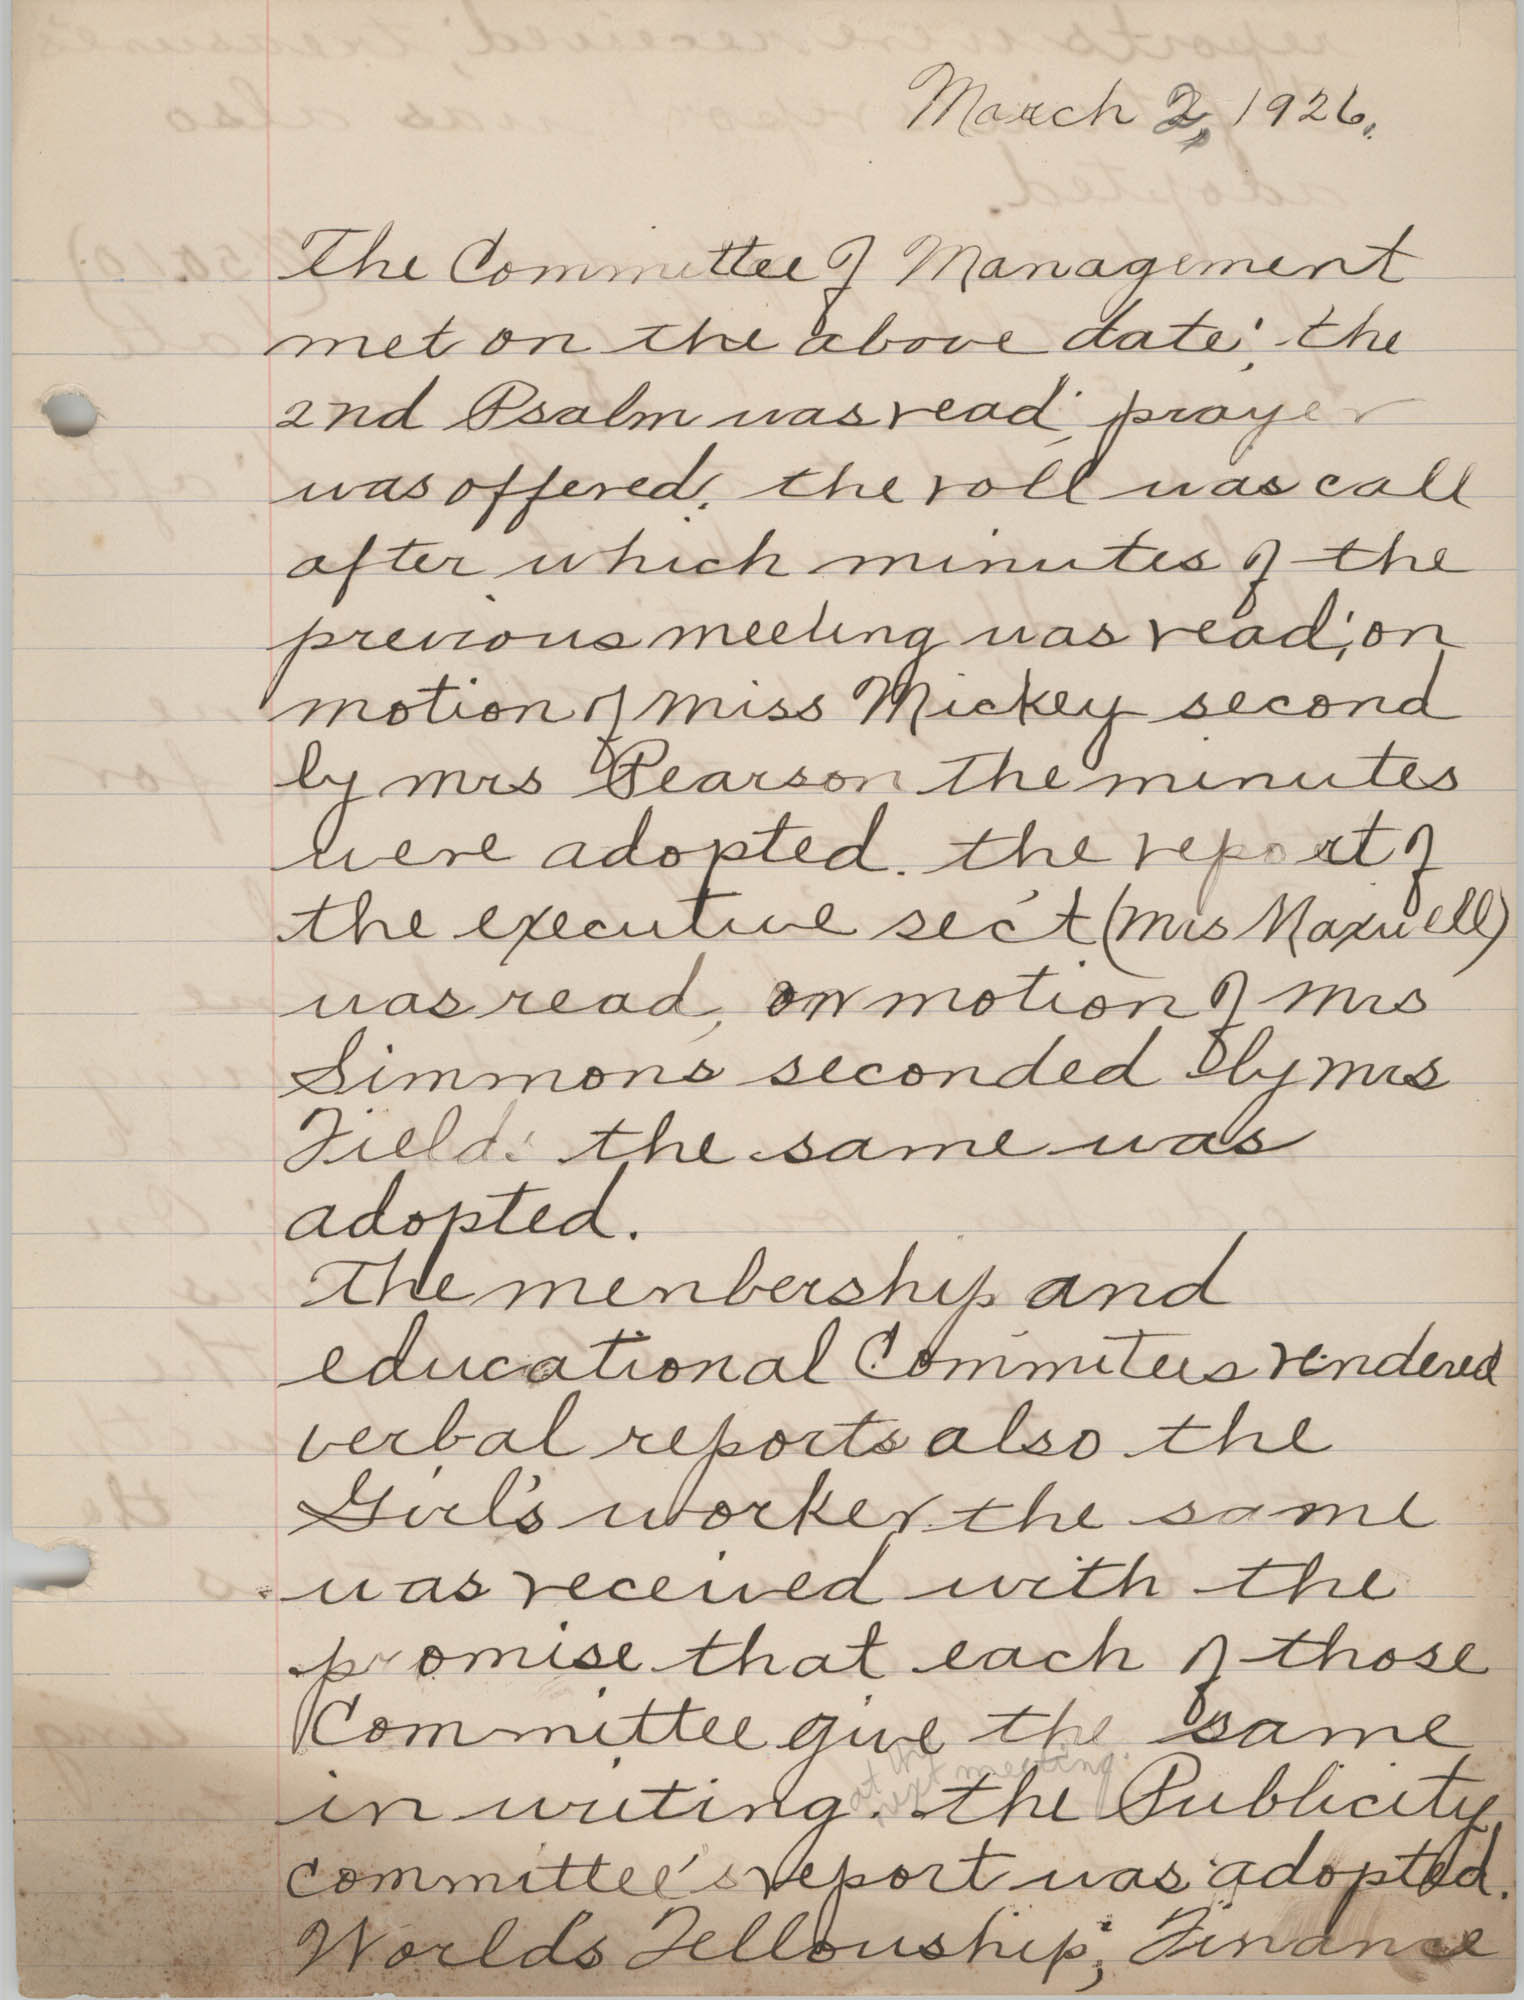 Minutes to the Board of Management, Coming Street Y.W.C.A., March 2, 1926